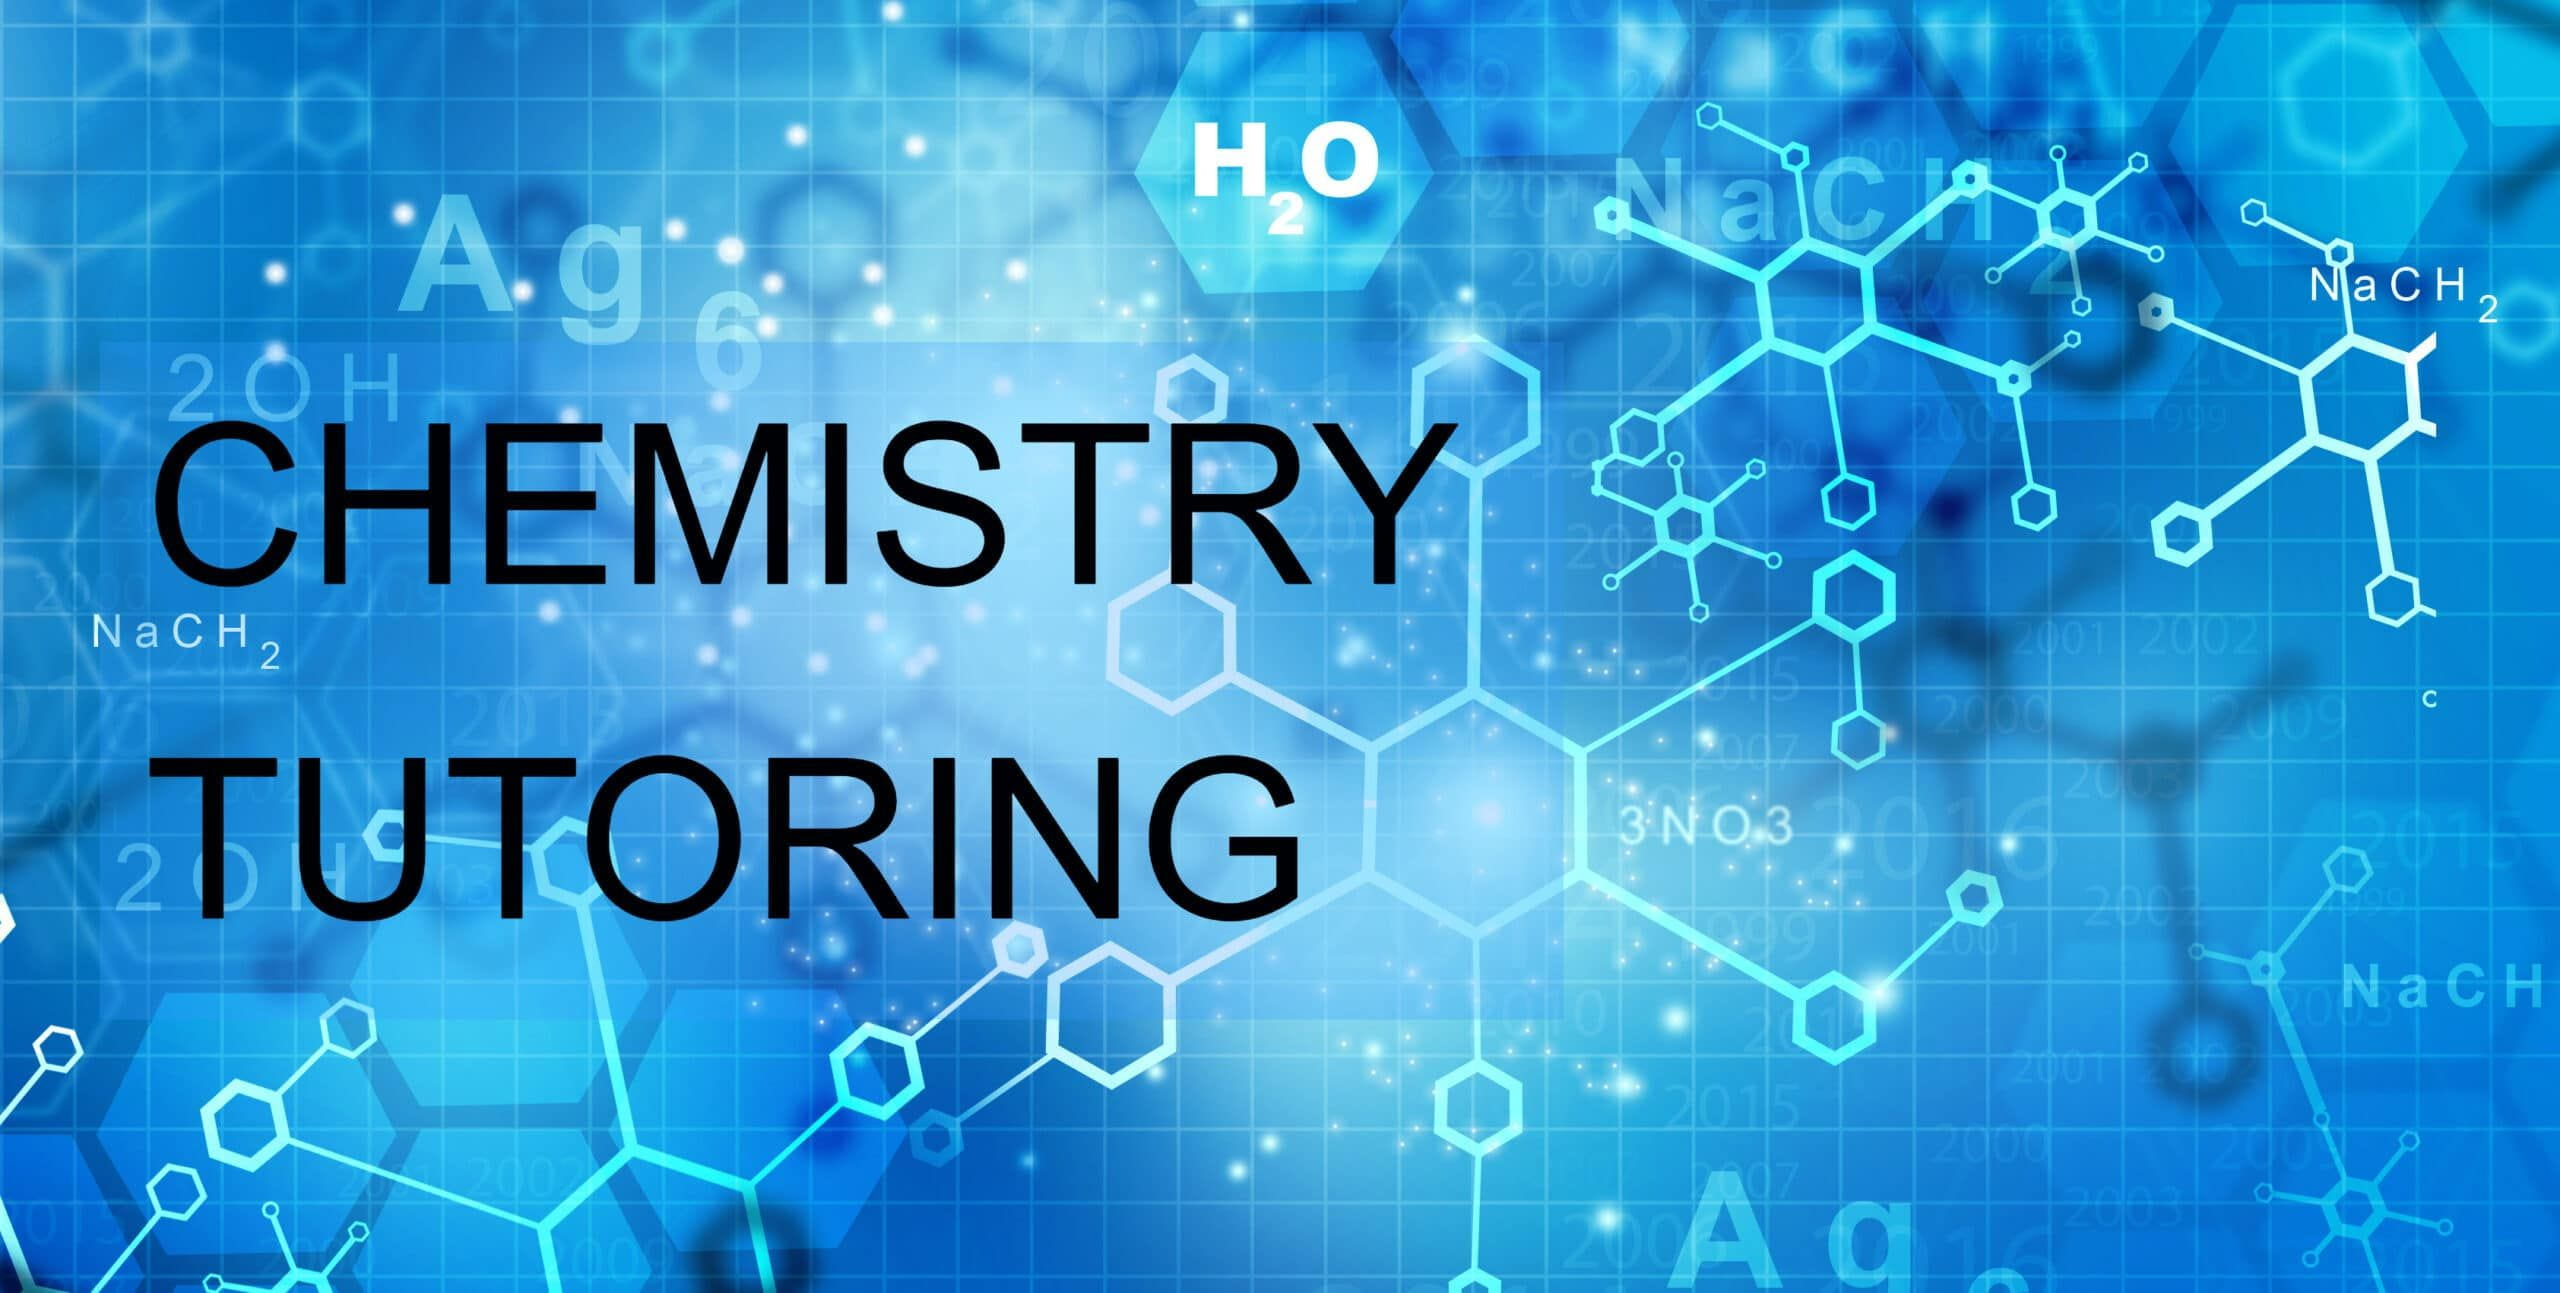 chemistry ib tutoring and chemistry ap tutoring with hack your course ap and ib tutoring service